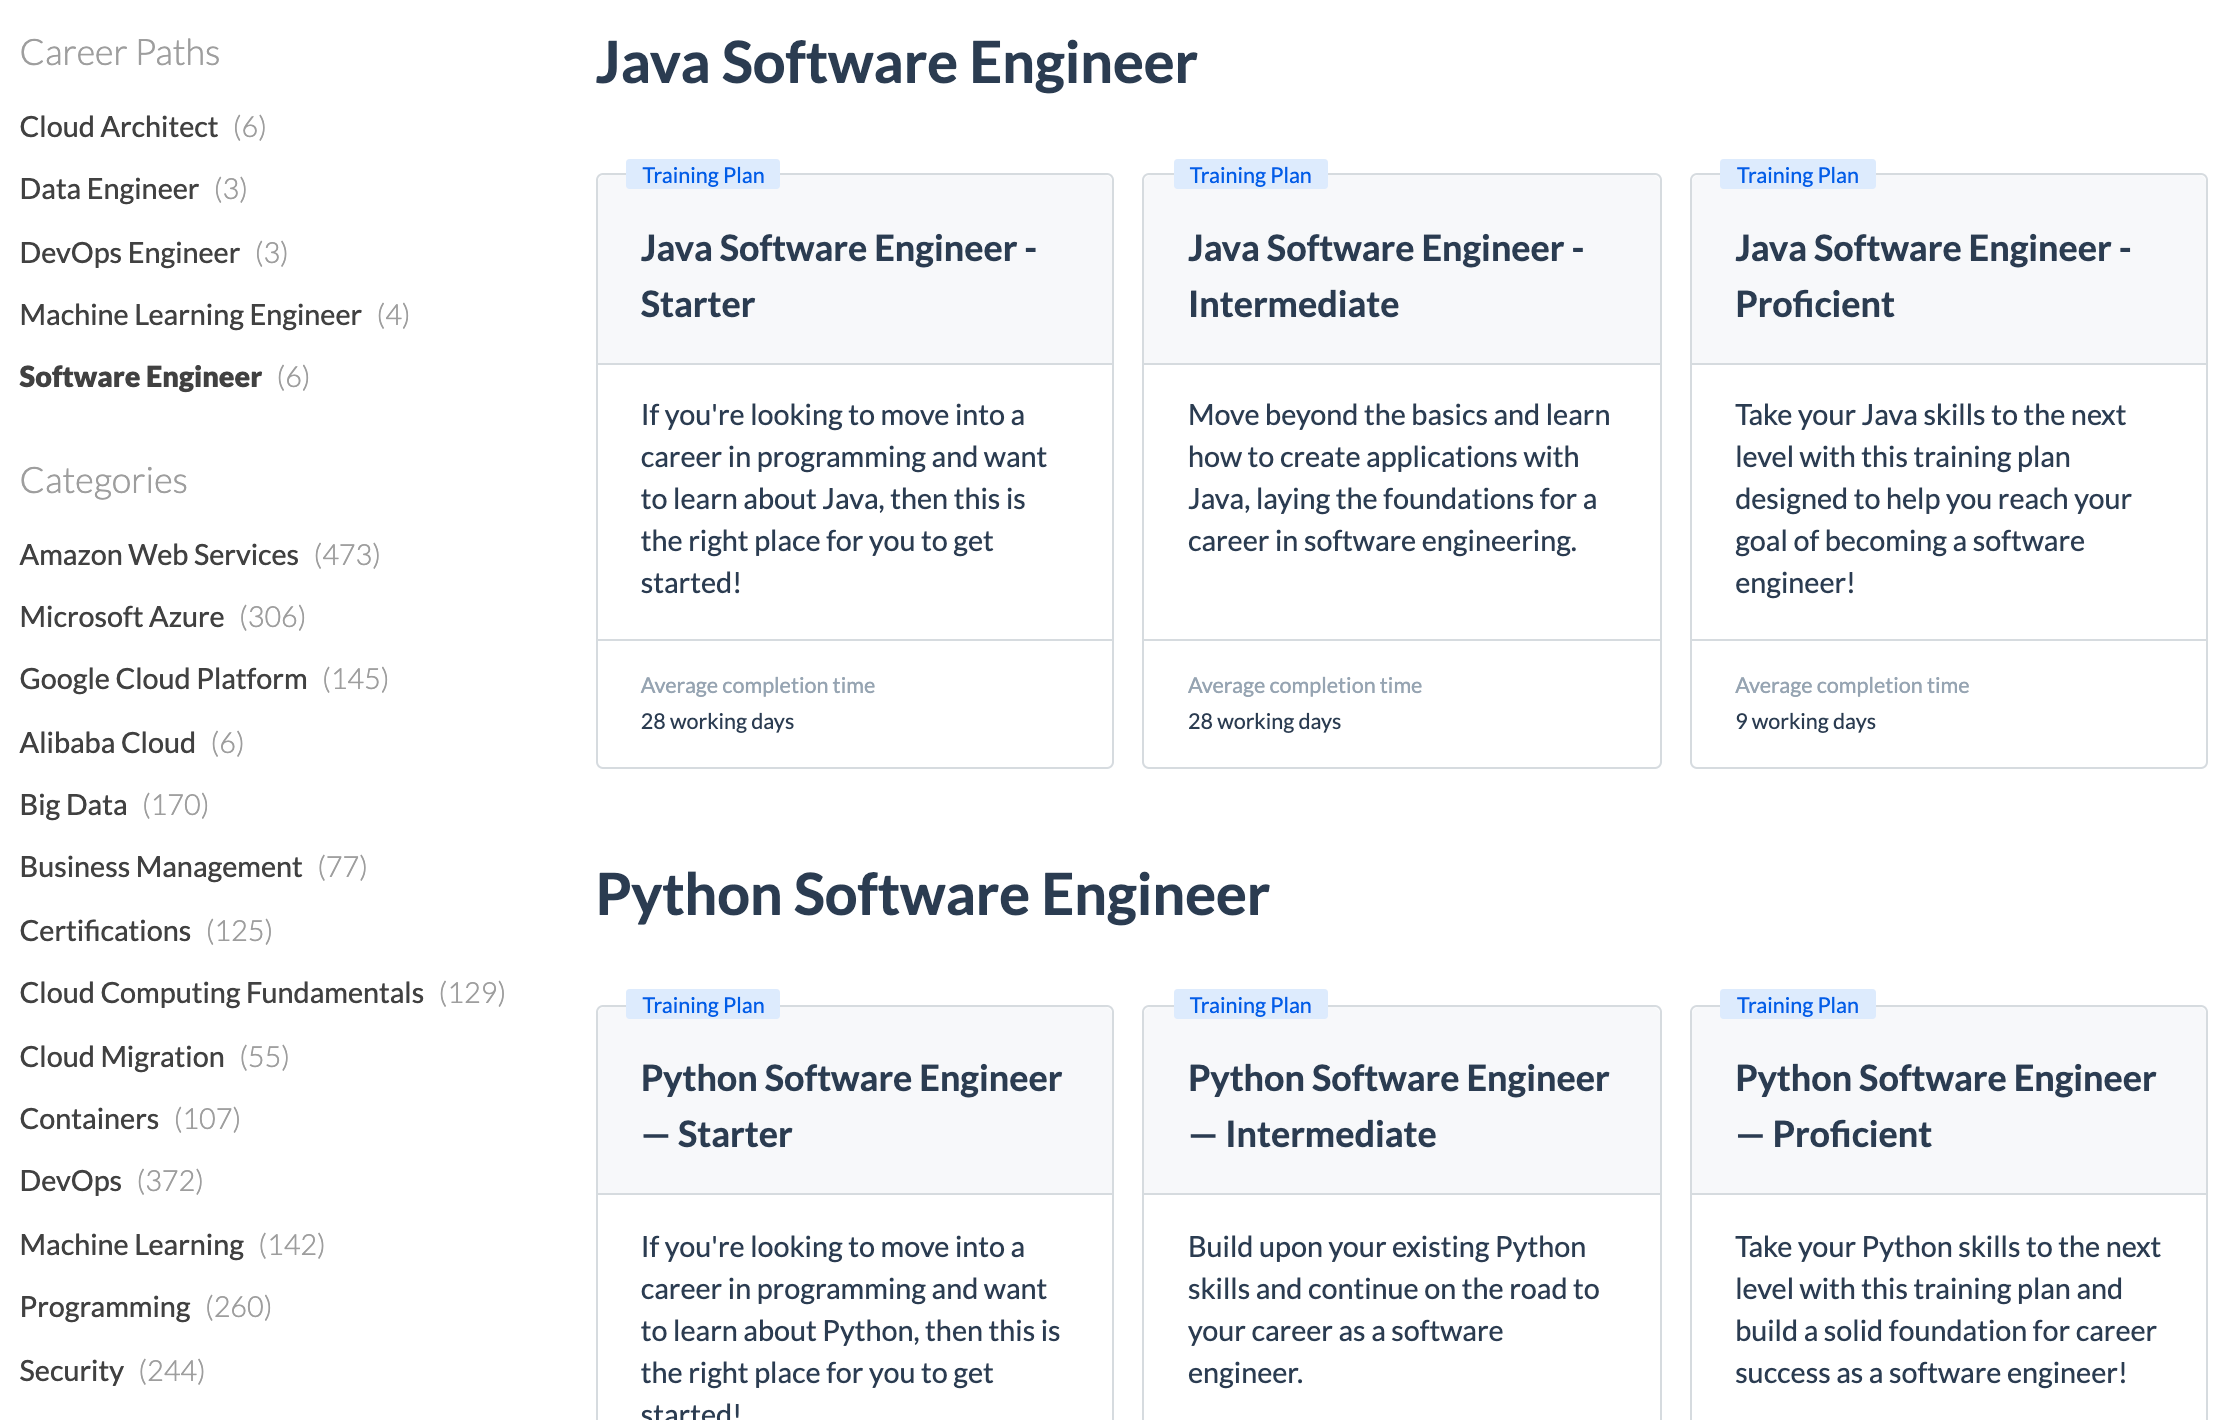 Examples of Software Engineer Career Paths